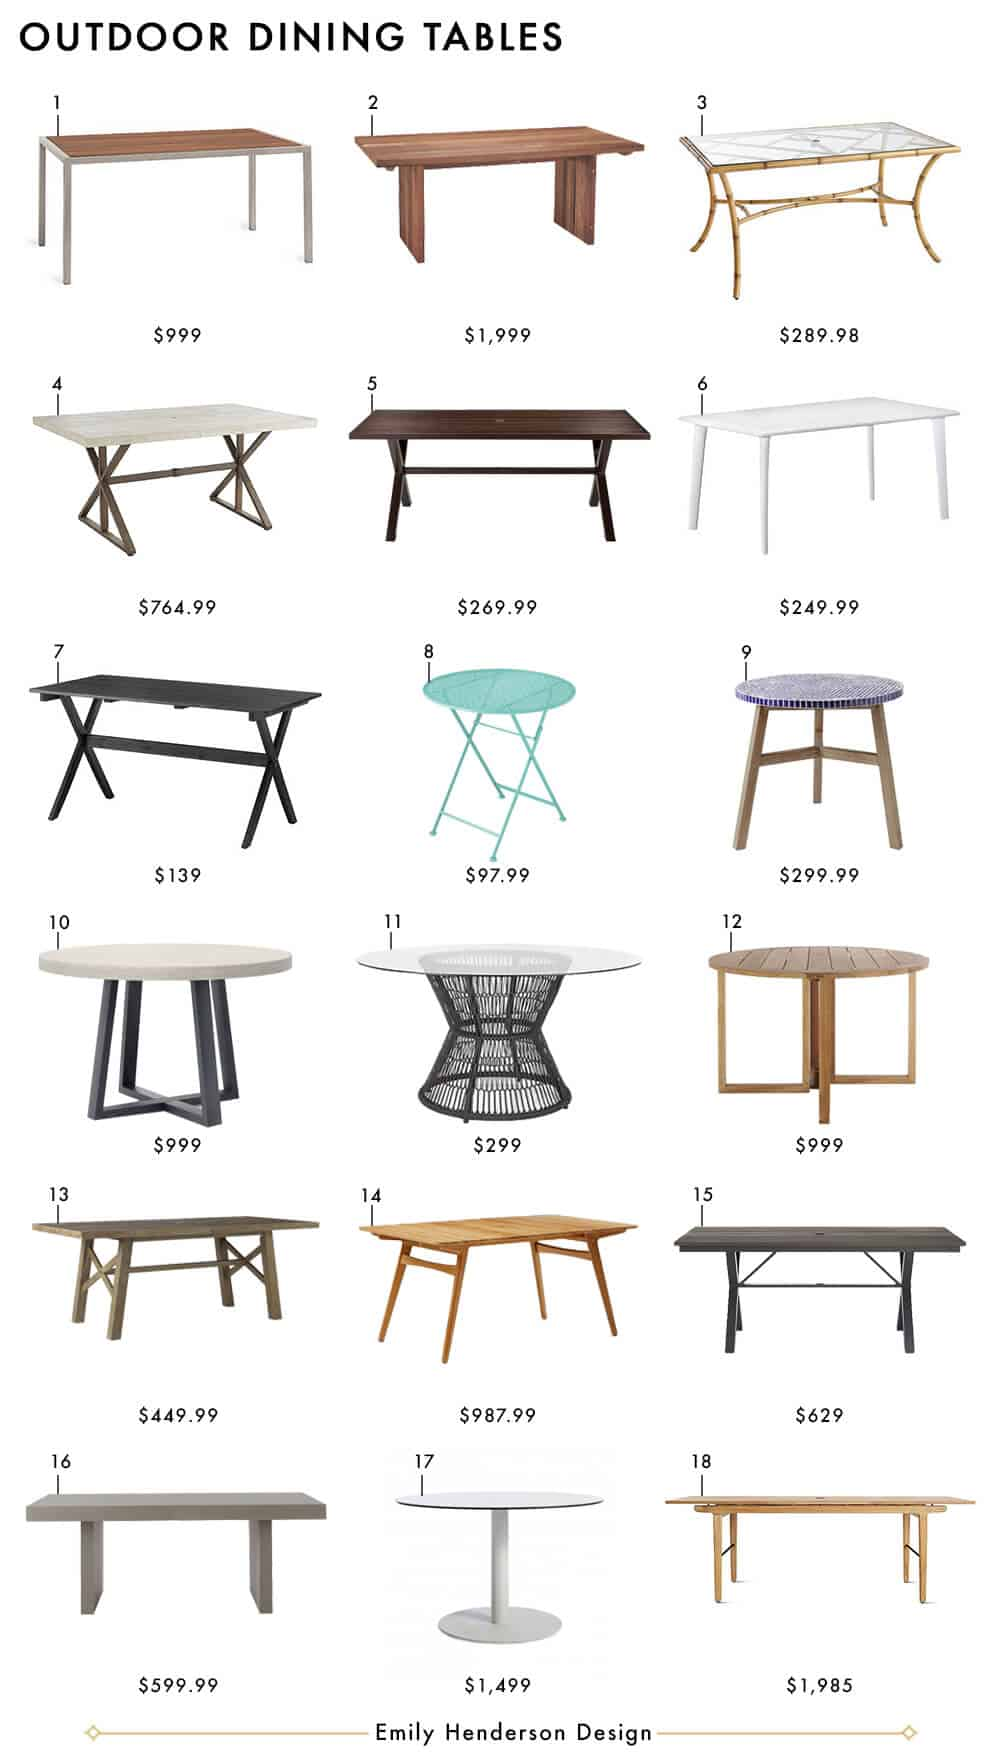 Outdoor Dining Tables Emily Henderson